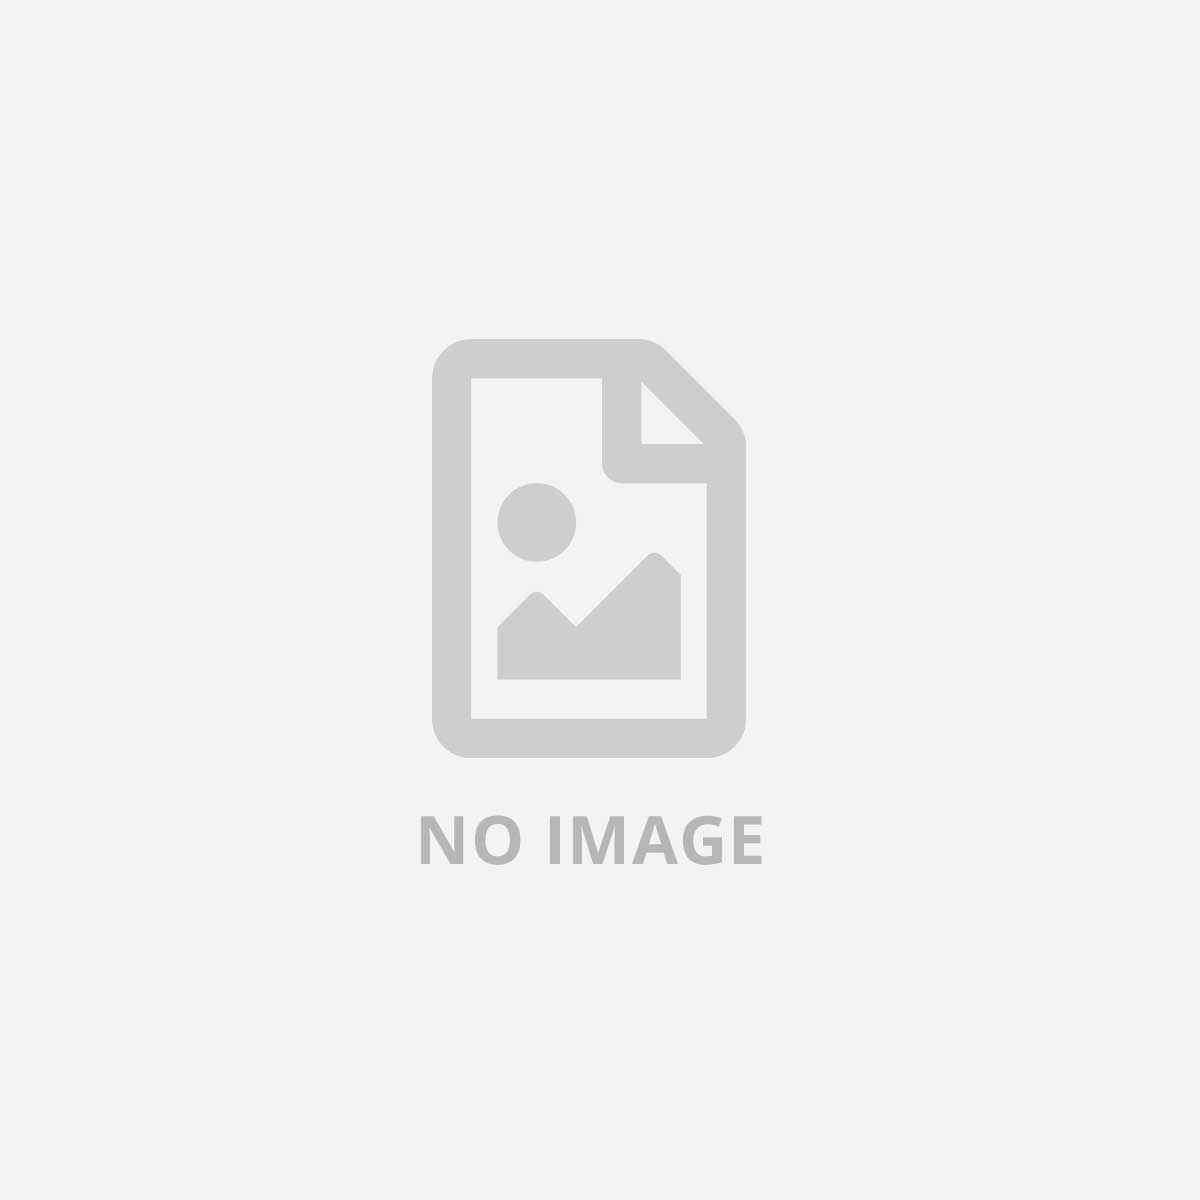 TOM TOM TOM START 20 M EU 45 P.AUTOVELOX